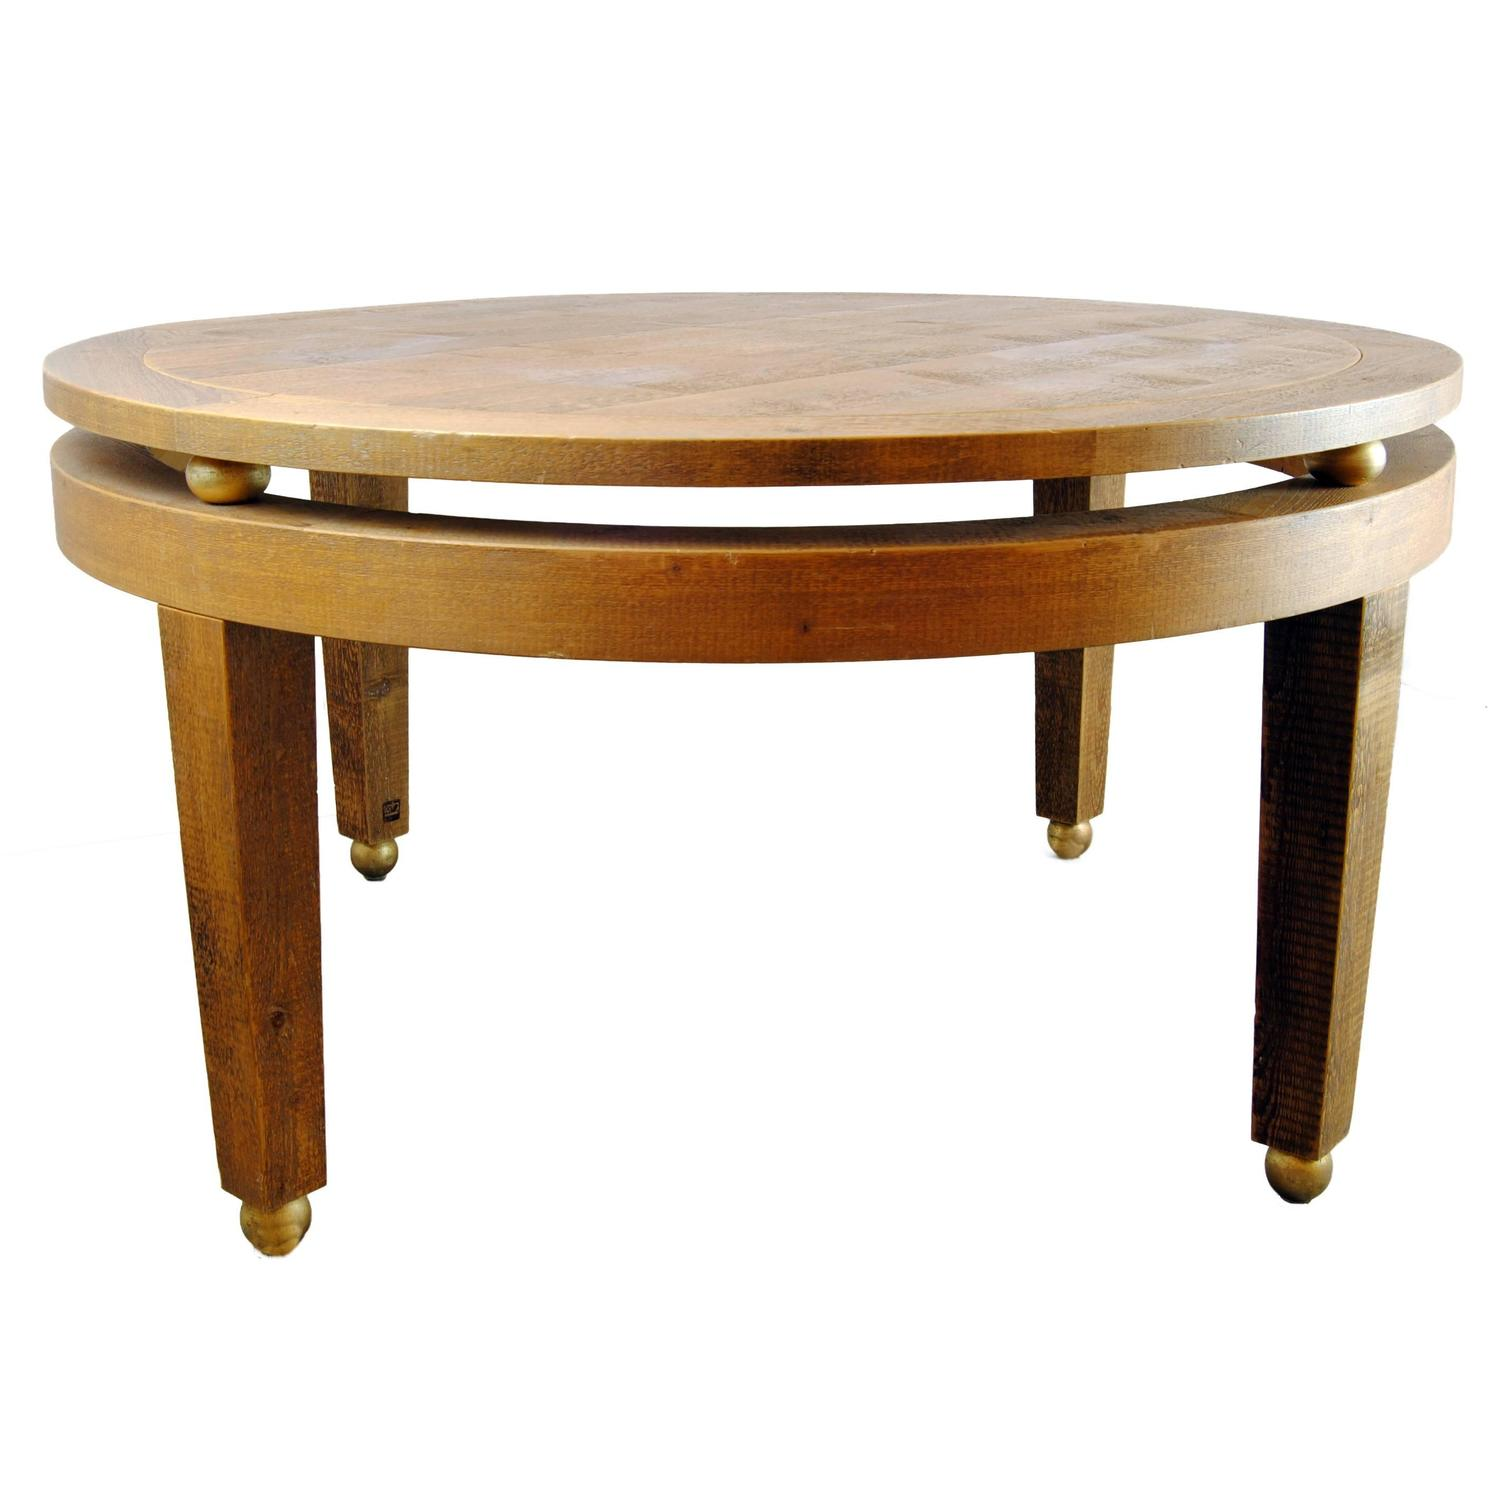 round contemporary wood dining table by michelangeli italy for sale